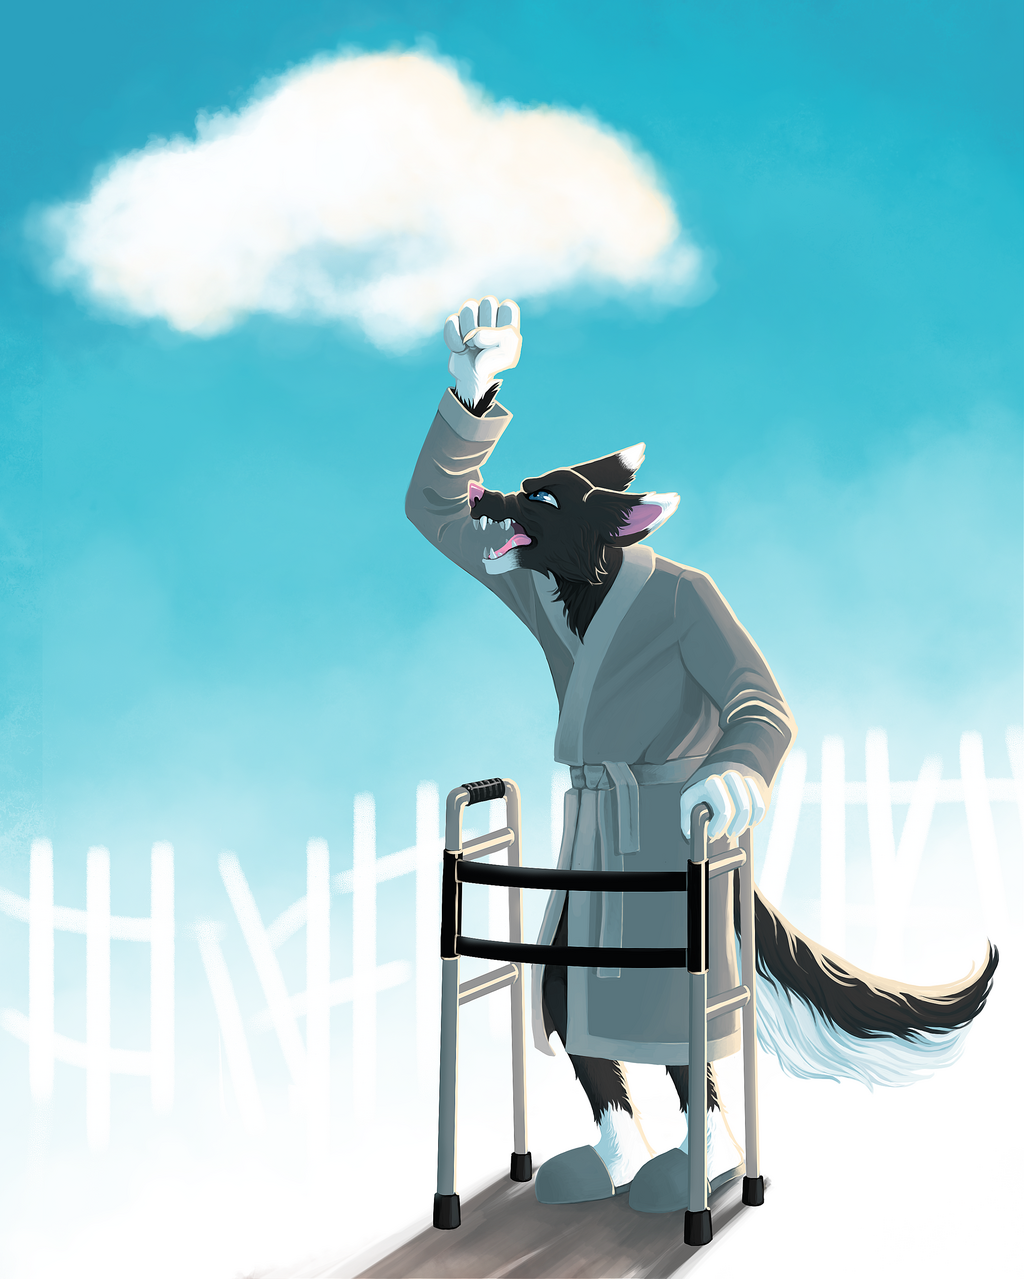 Most recent image: Old (young) wolf yells at clouds commission by jellopowderx